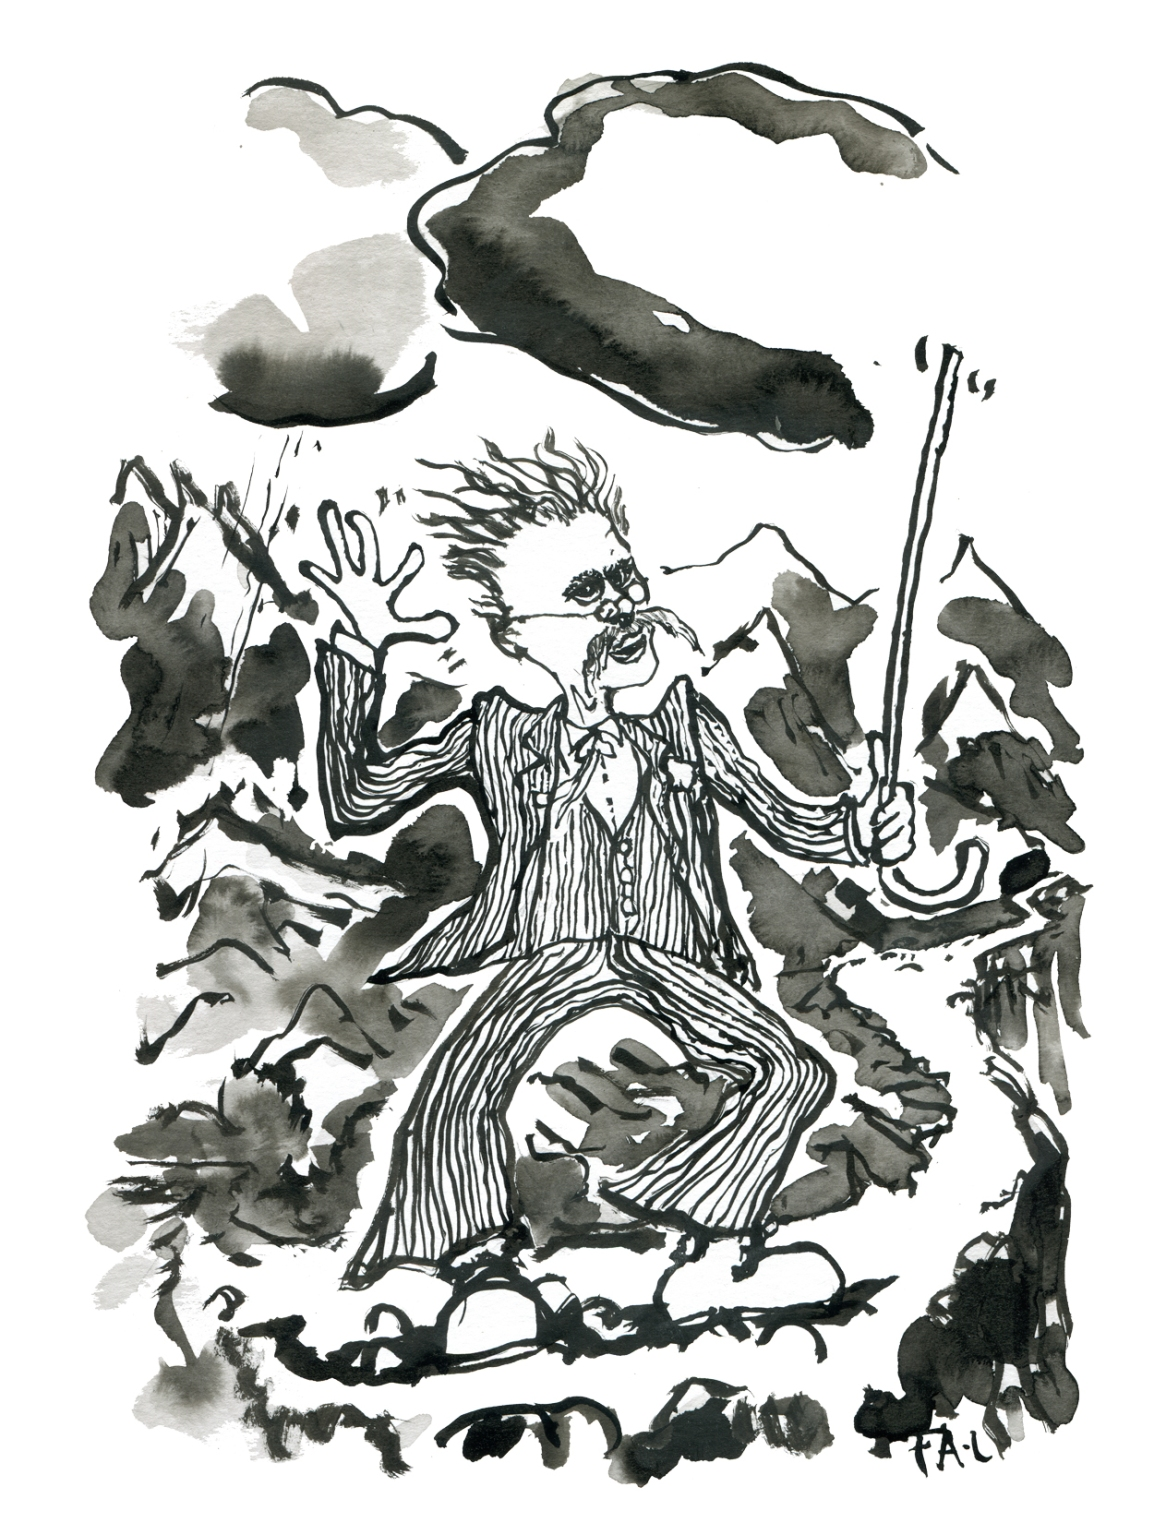 Portrait of Friedrich Nietzsche on a mountain trail. German philosopher. Ink drawing by Frits Ahlefeldt